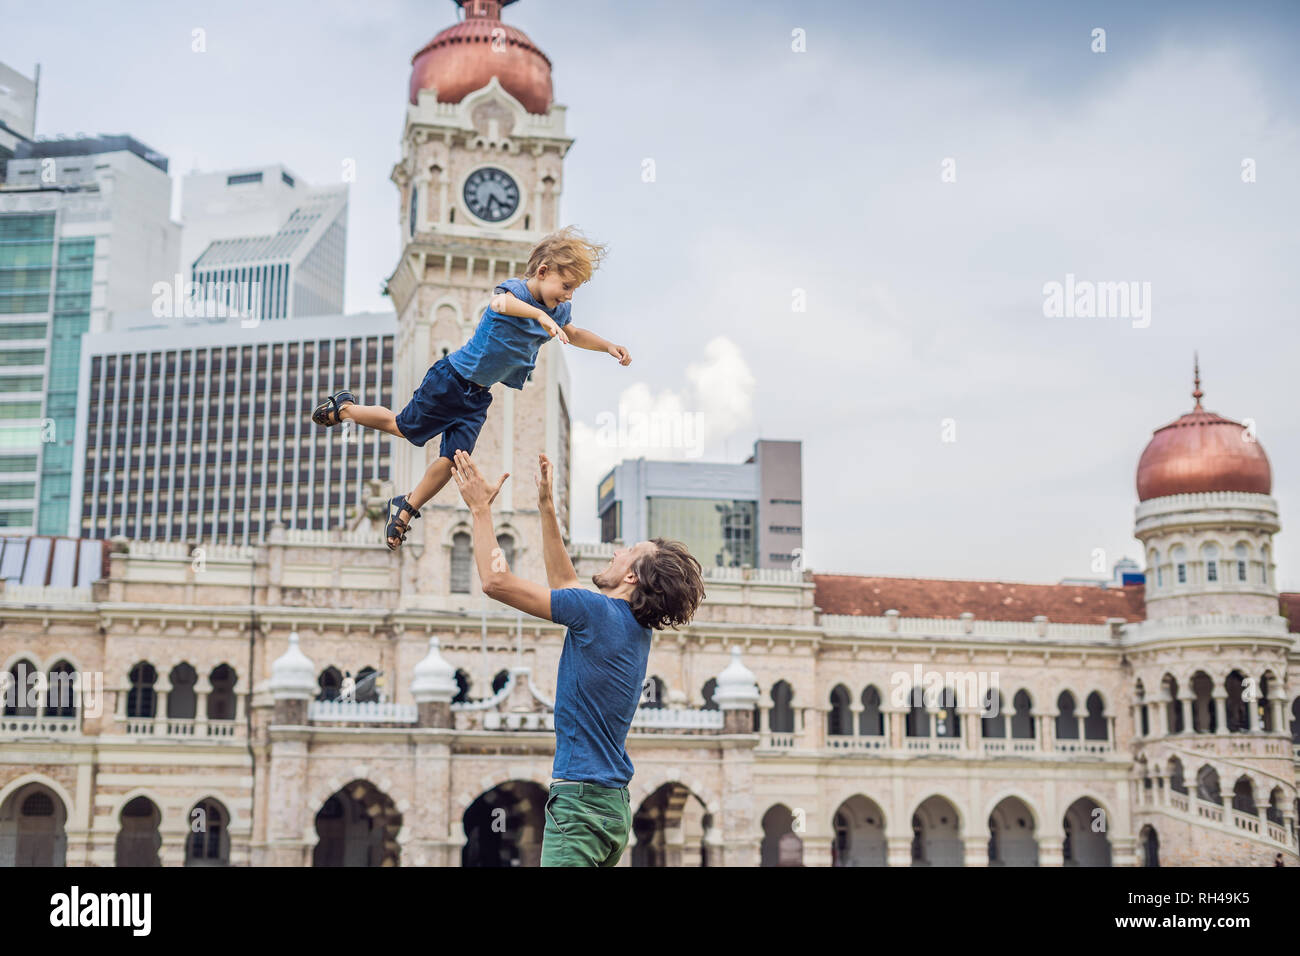 Dad and son on background of Sultan Abdul Samad Building in Kuala Lumpur, Malaysia. Traveling with children concept - Stock Image